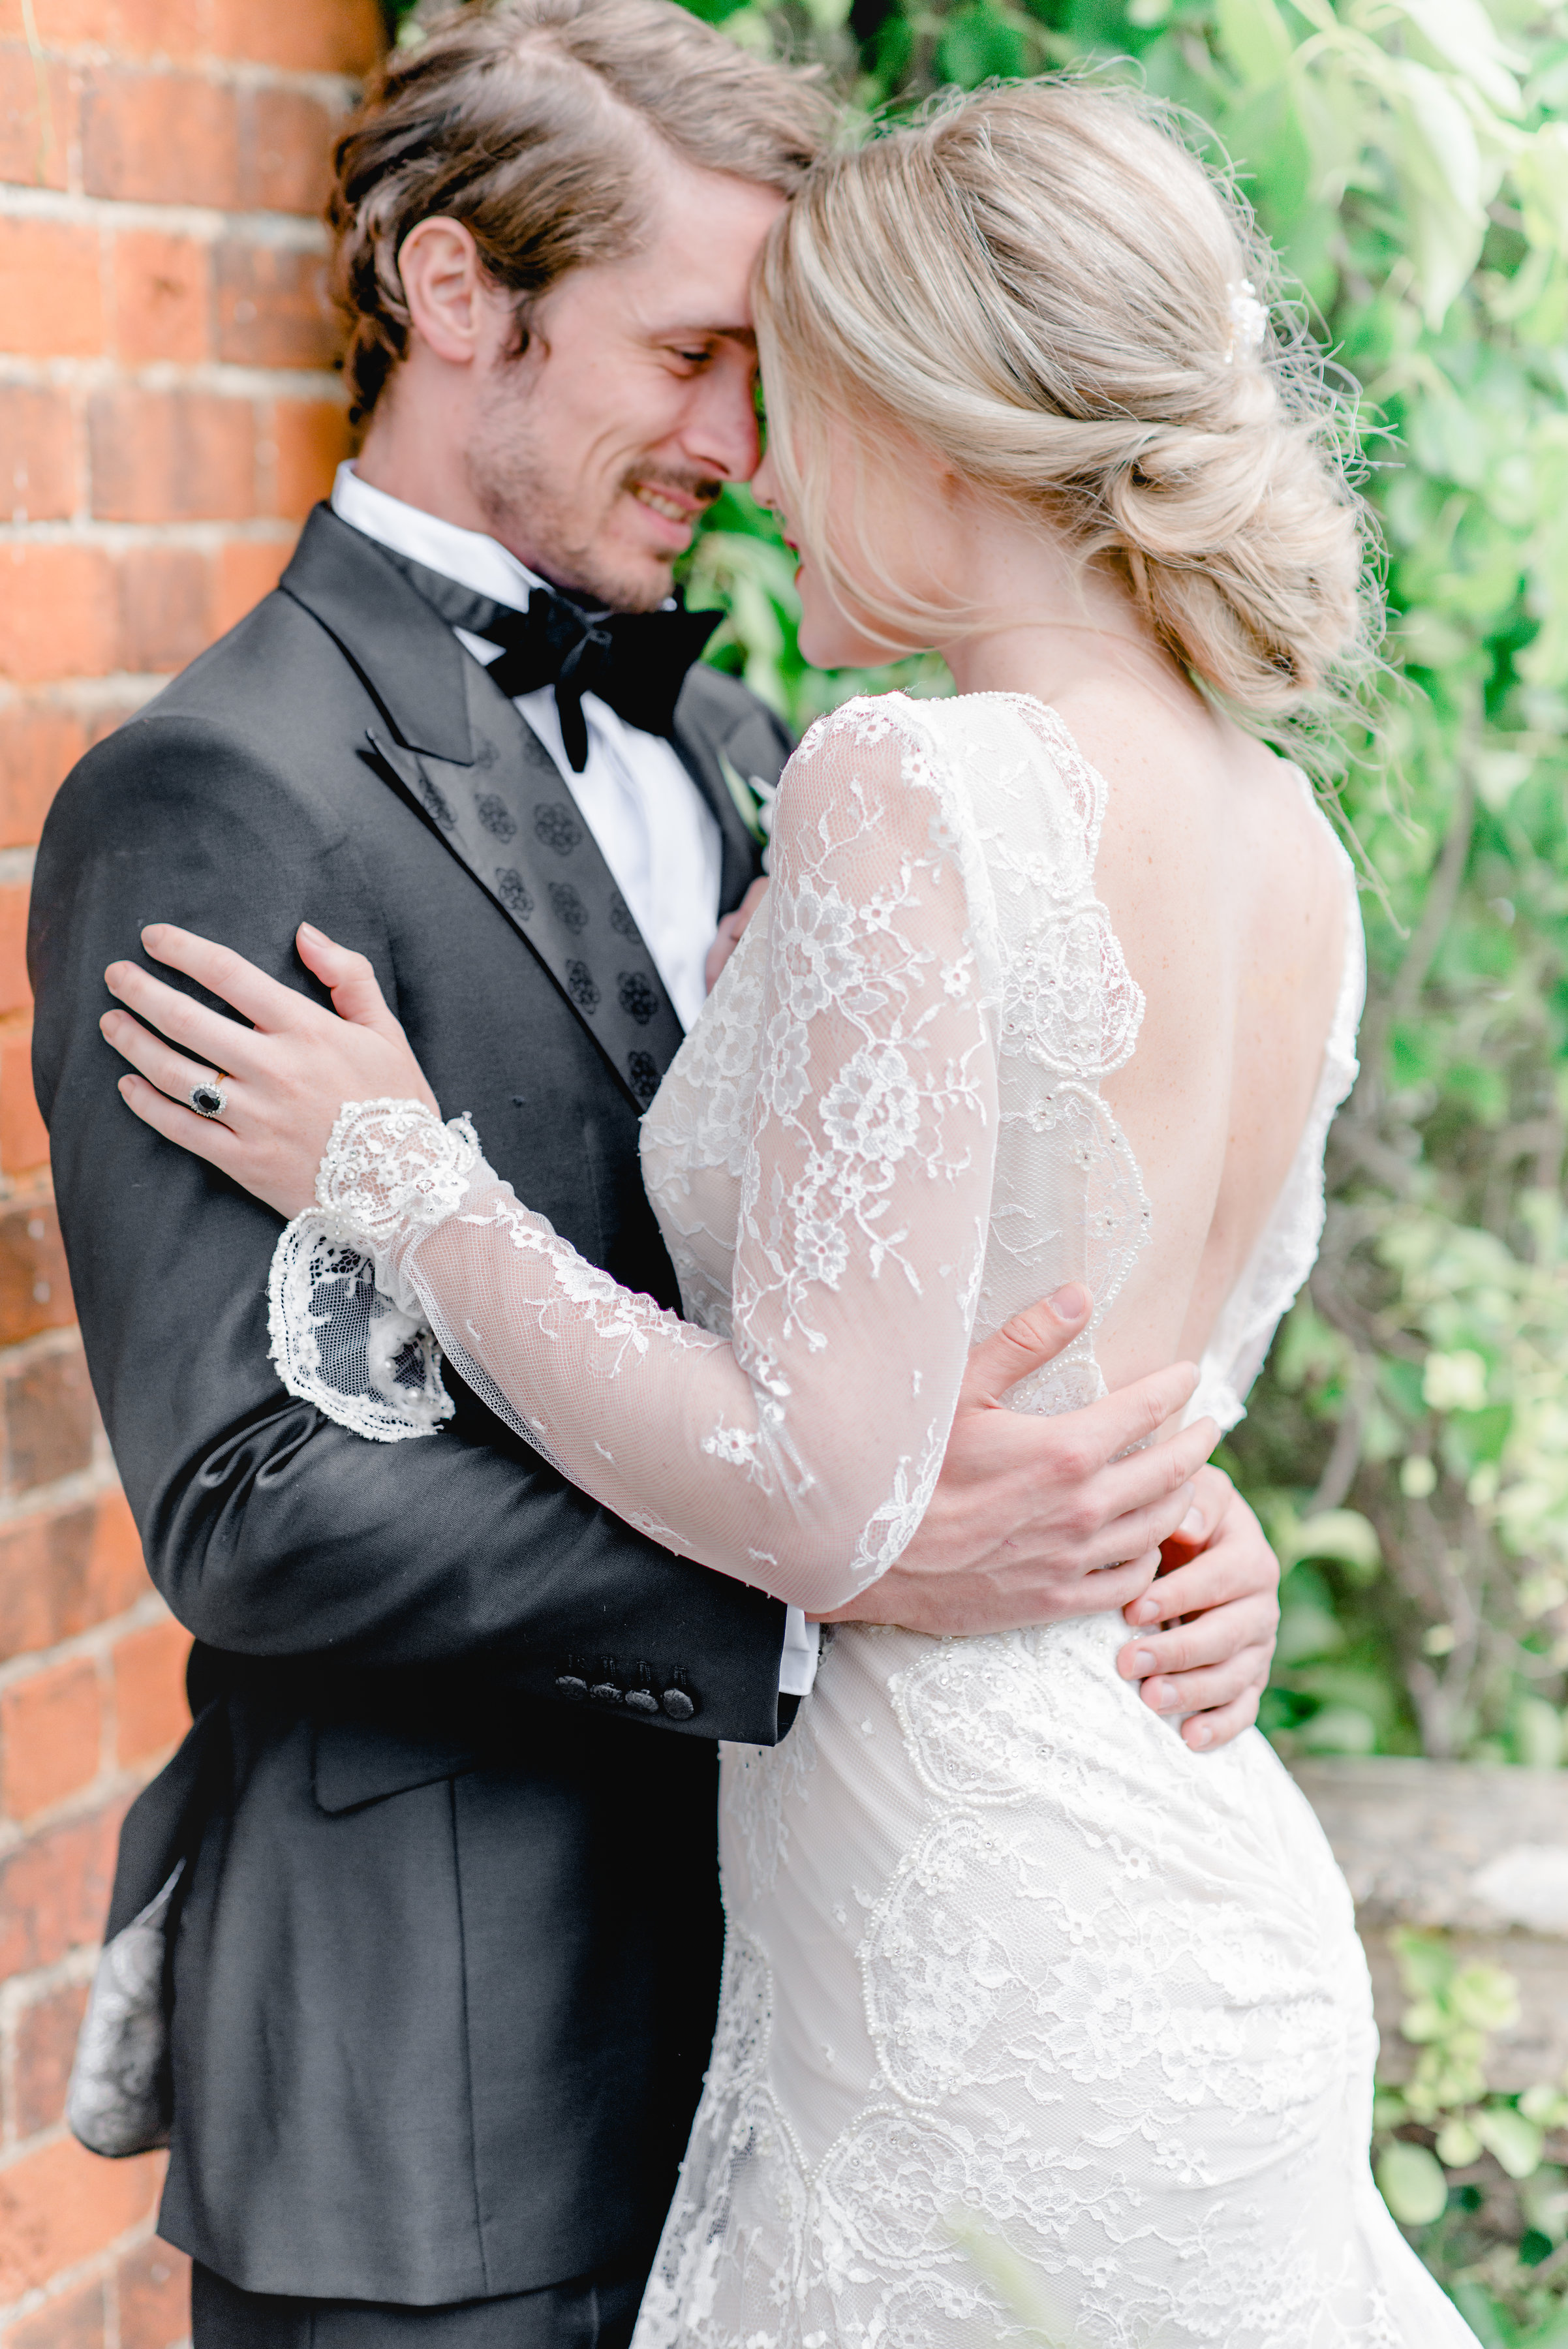 The Timeless Stylist-Elegant and Romantic Wedding Styling-Autumnal Wedding.jpg